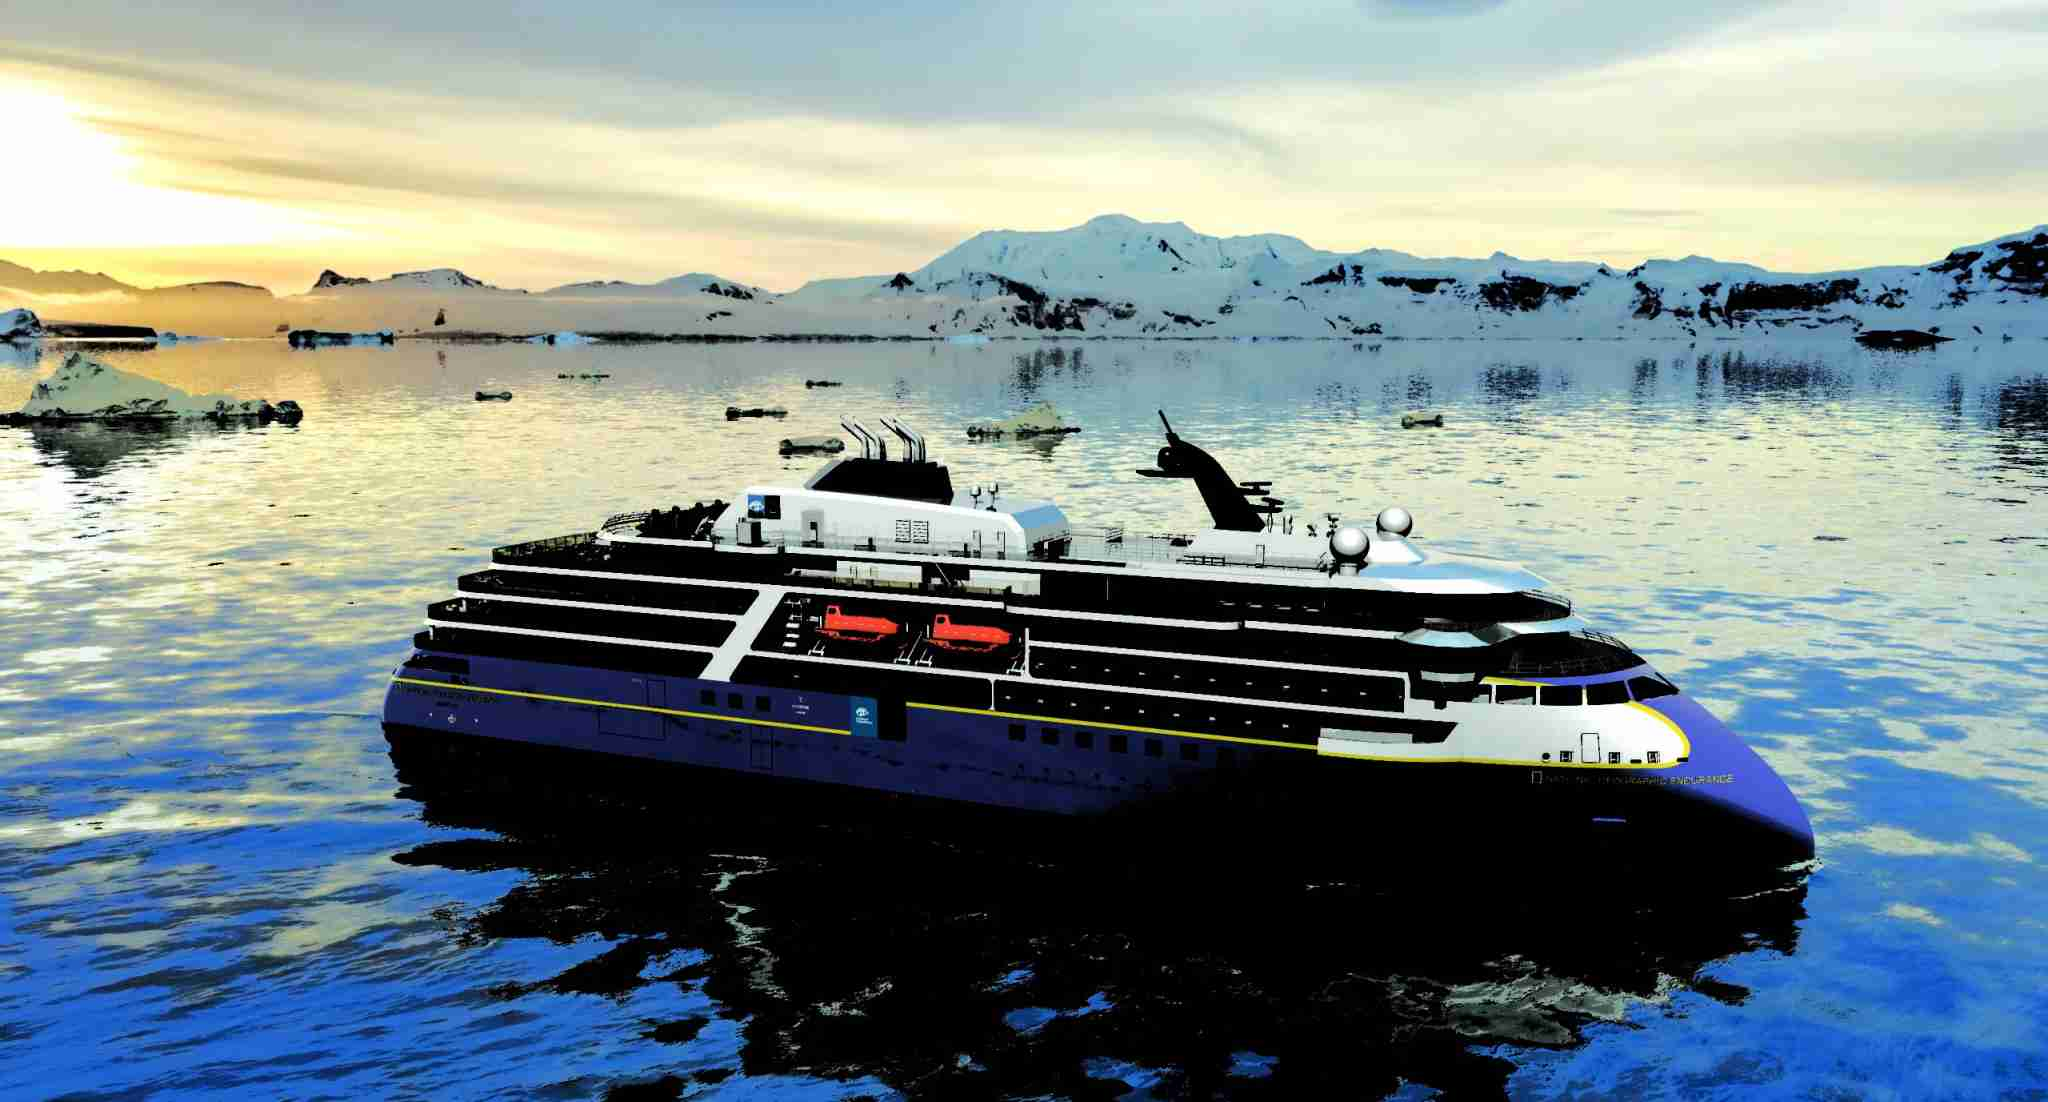 National Geographic Endurance is being billed as the most advanced polar expedition ship ever. Image courtesy of Lindblad Expeditions.